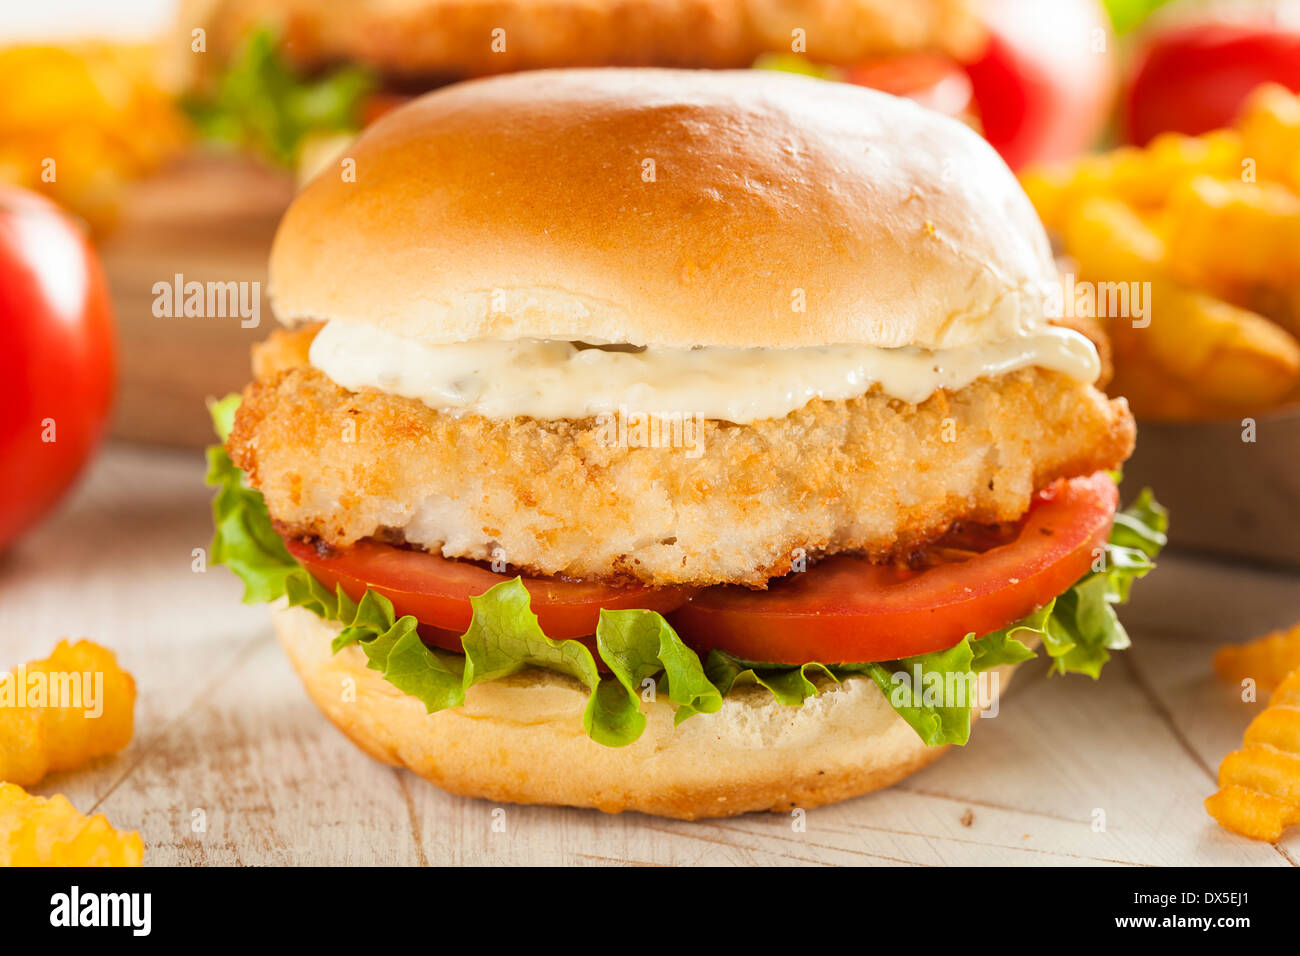 Breaded Fish Sandwich with Tartar Sauce and Fries - Stock Image